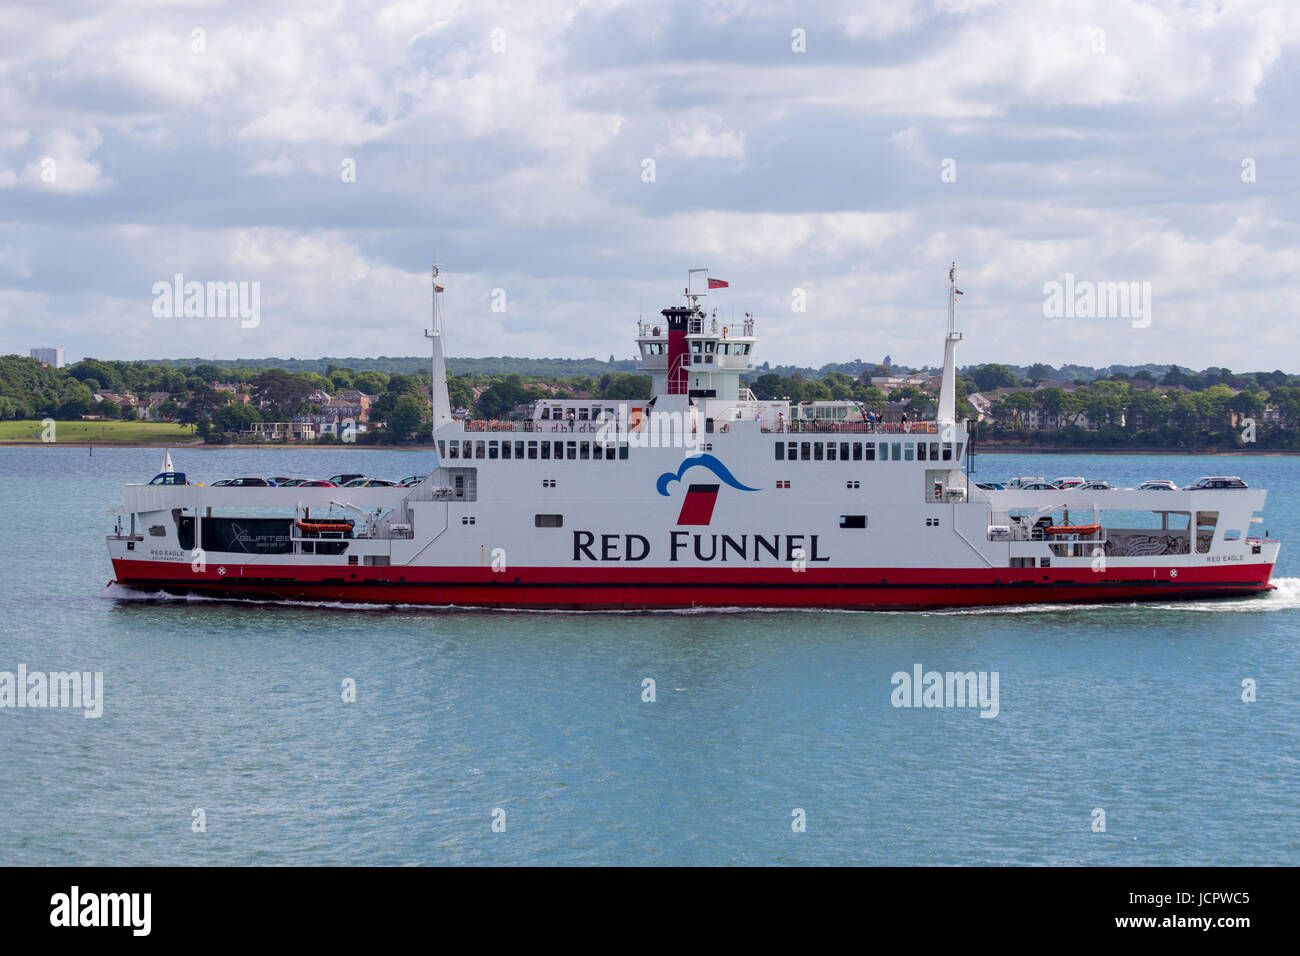 Red Funnel Roter Adlerorden Roll-on Roll off Autofähre von der Isle Of Wight in Richtung Southampton Stockfoto